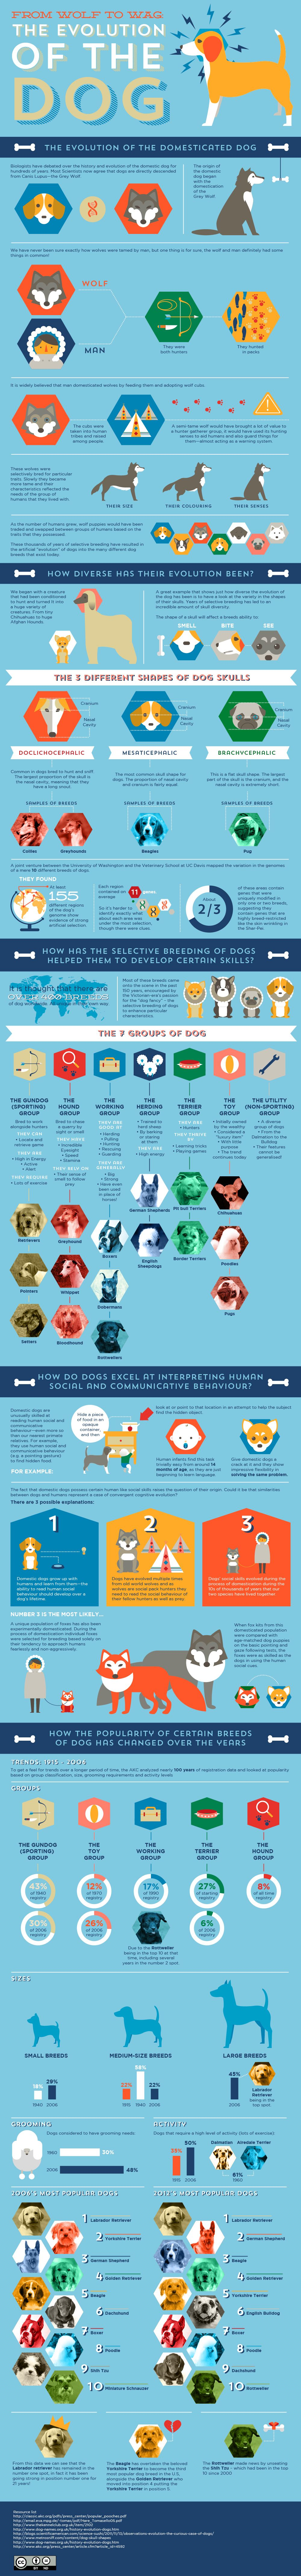 The Evolution Of The Dog Infographic Is A Pretty Interesting Read If You Re Looking For Pet Sitters Thi Dog Infographic Dog Training Obedience Domestic Dog